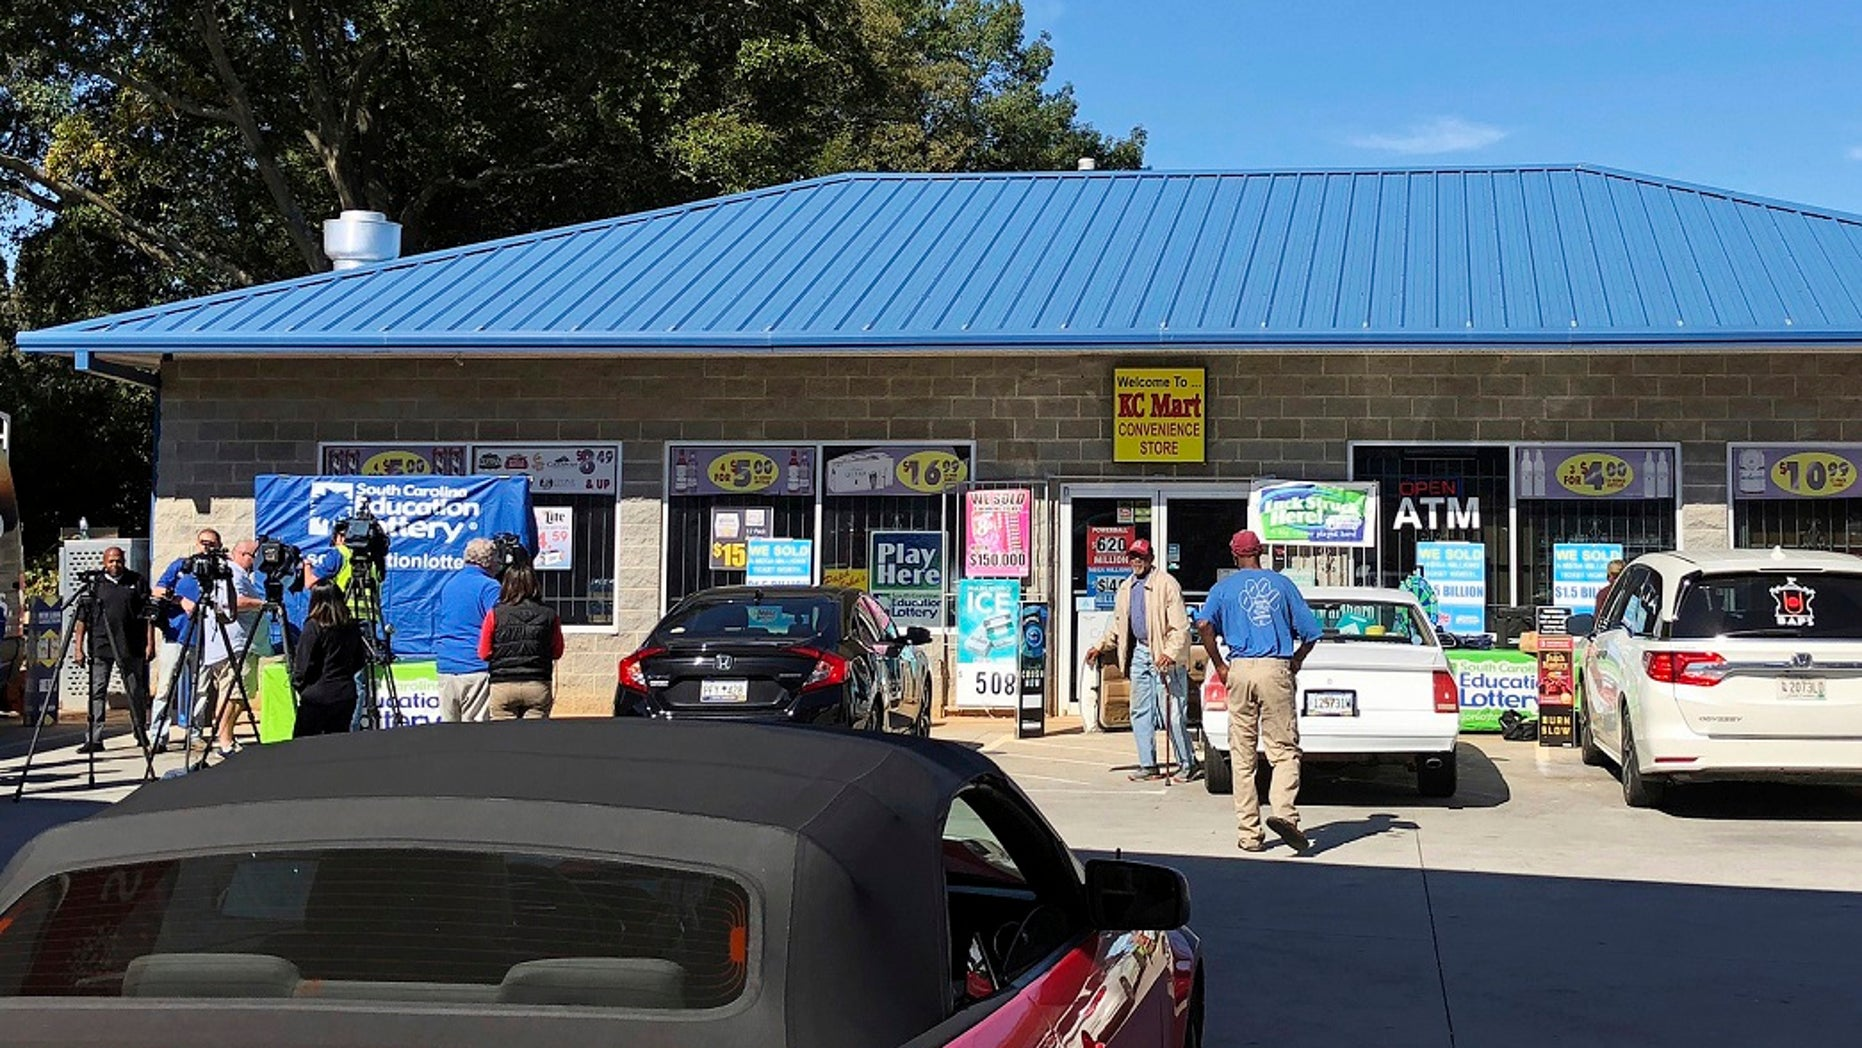 The KC Mart in Simpsonville, S.C., which sold the record-breaking Mega Millions ticket.